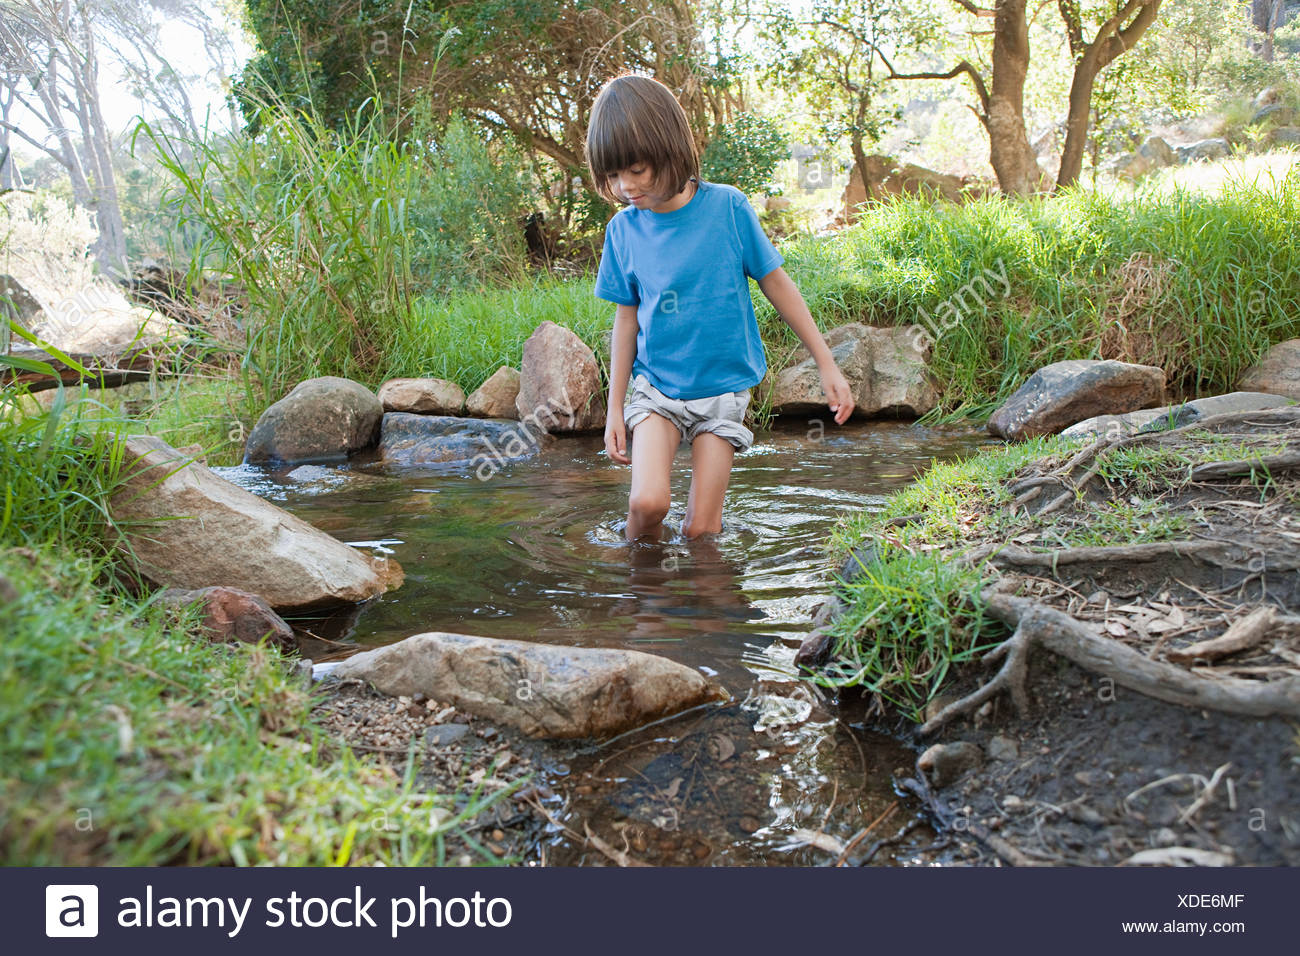 Boy in a river - Stock Image